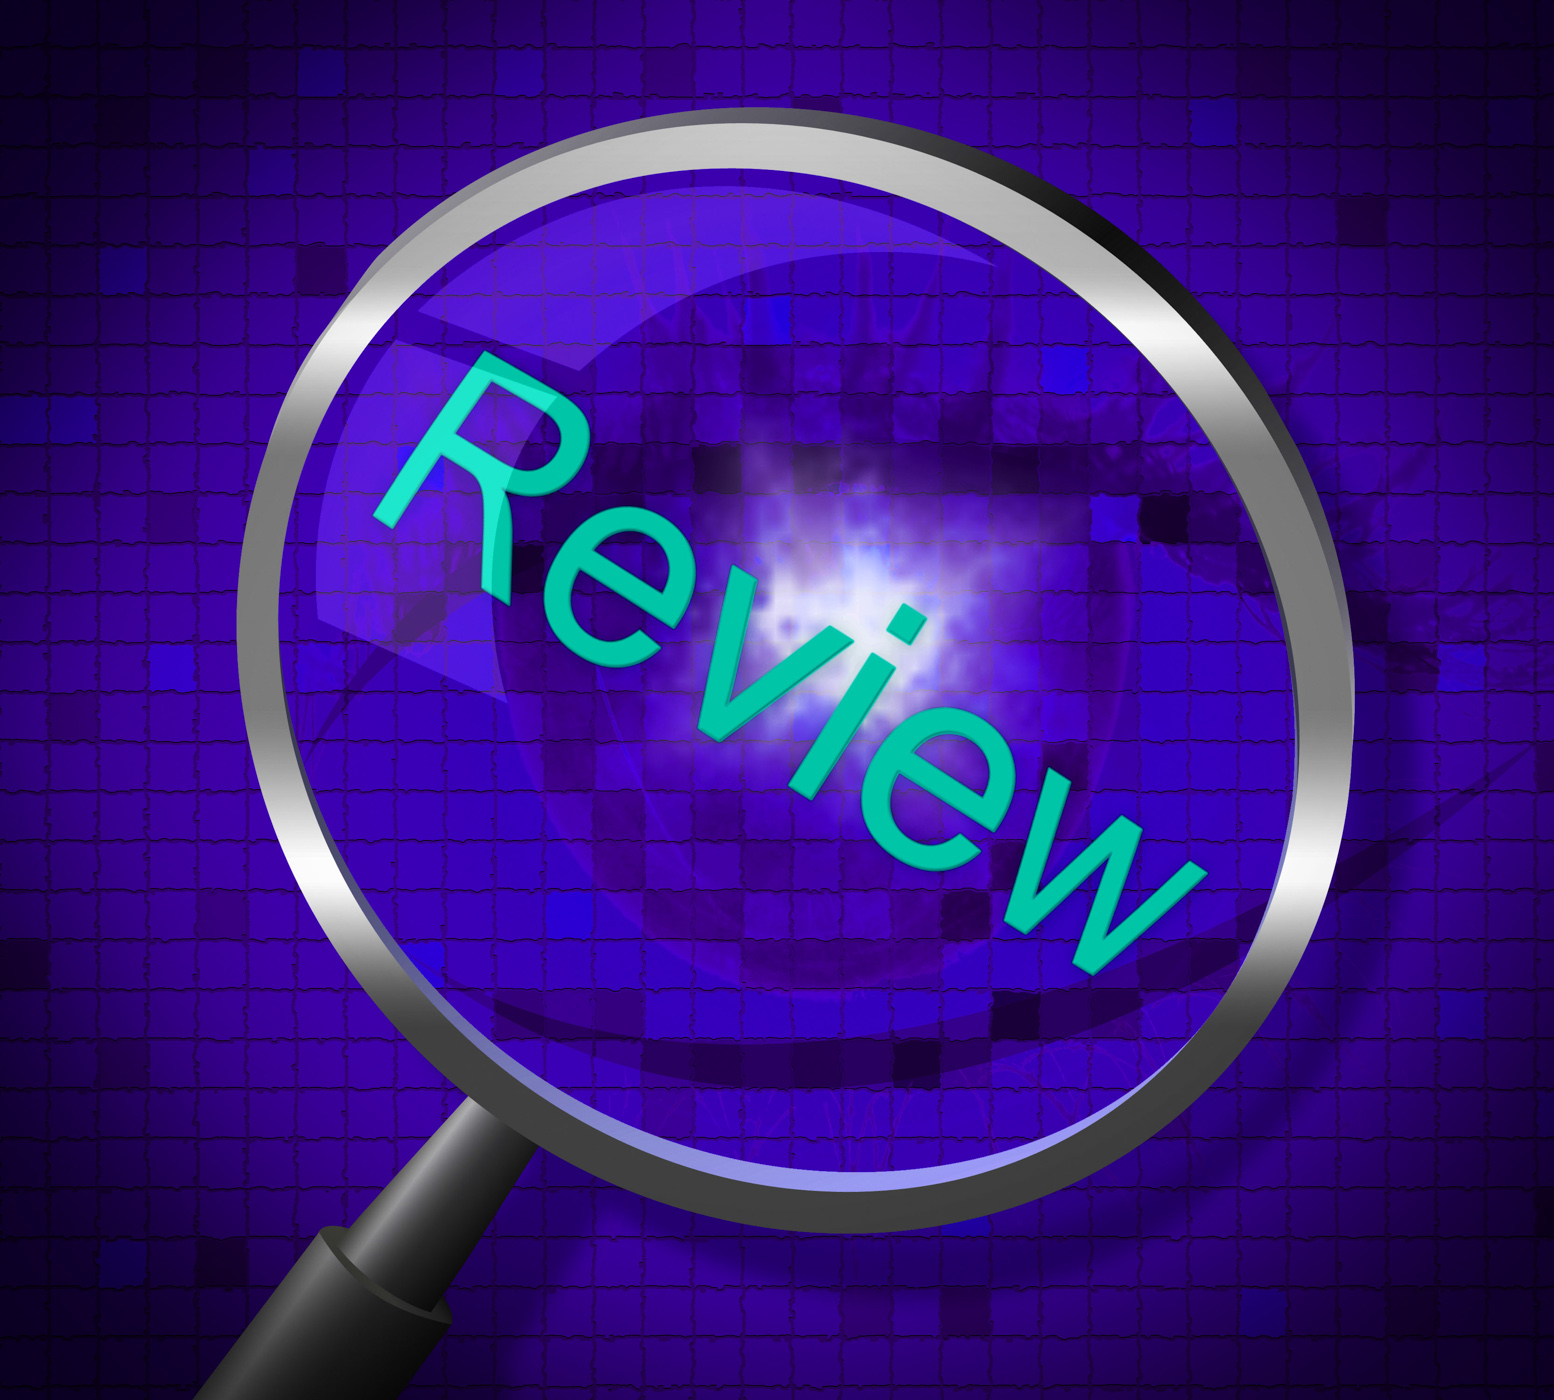 Magnifier review represents magnifying research and evaluating photo